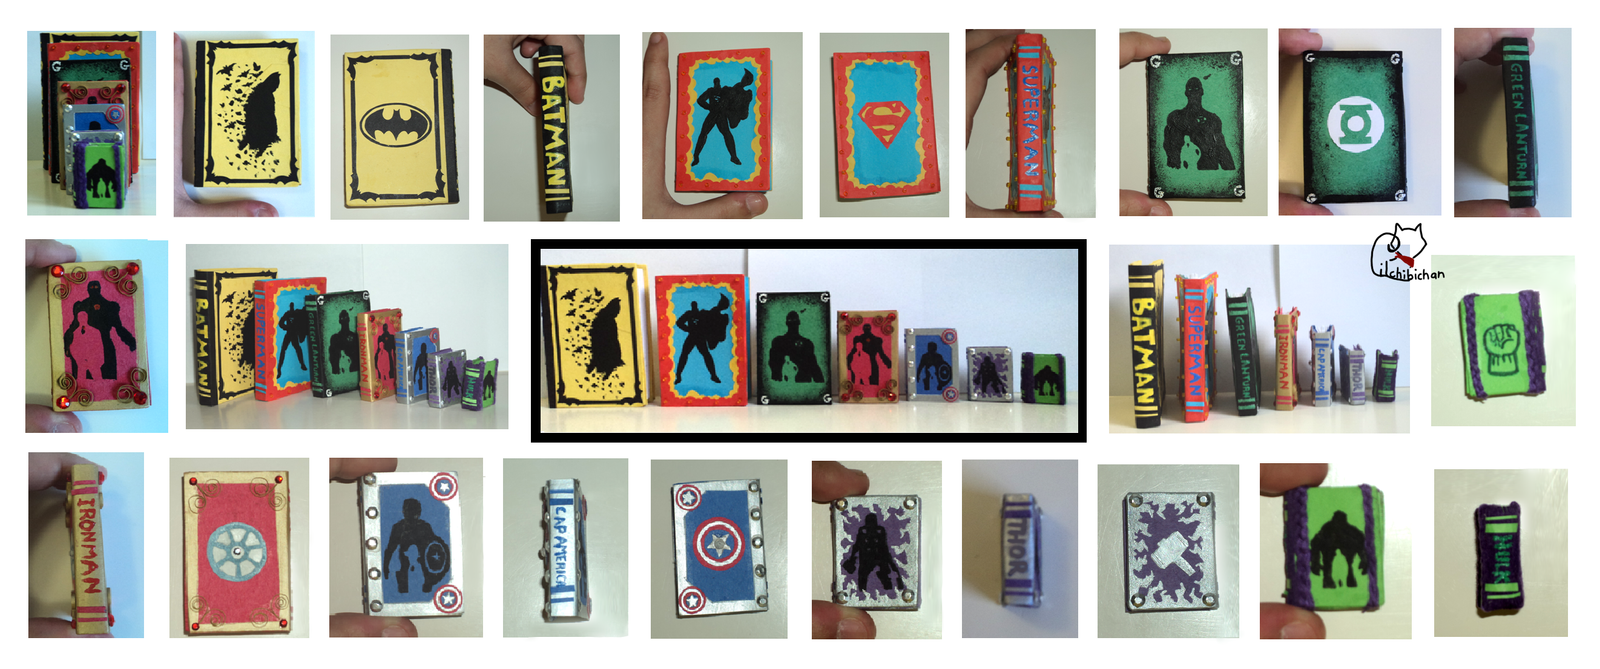 Superhero Miniature Book Series by lilchibichan